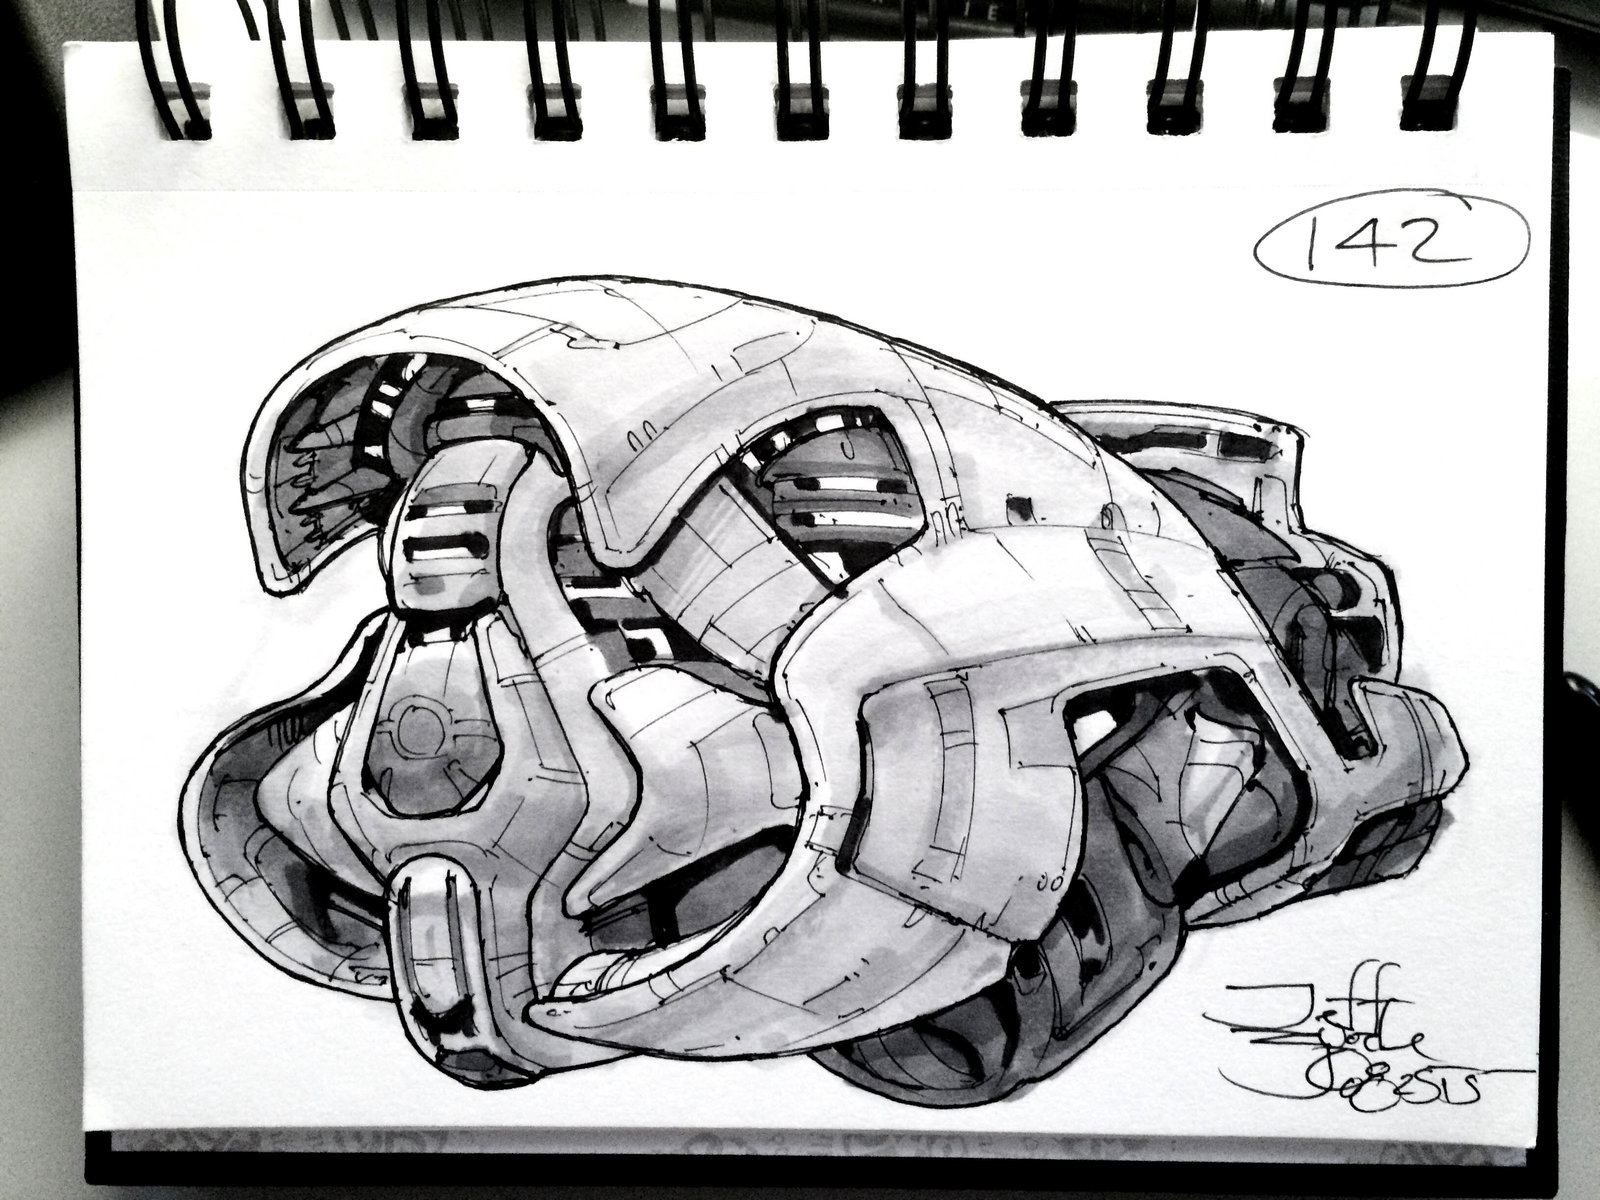 SpaceshipADay 142